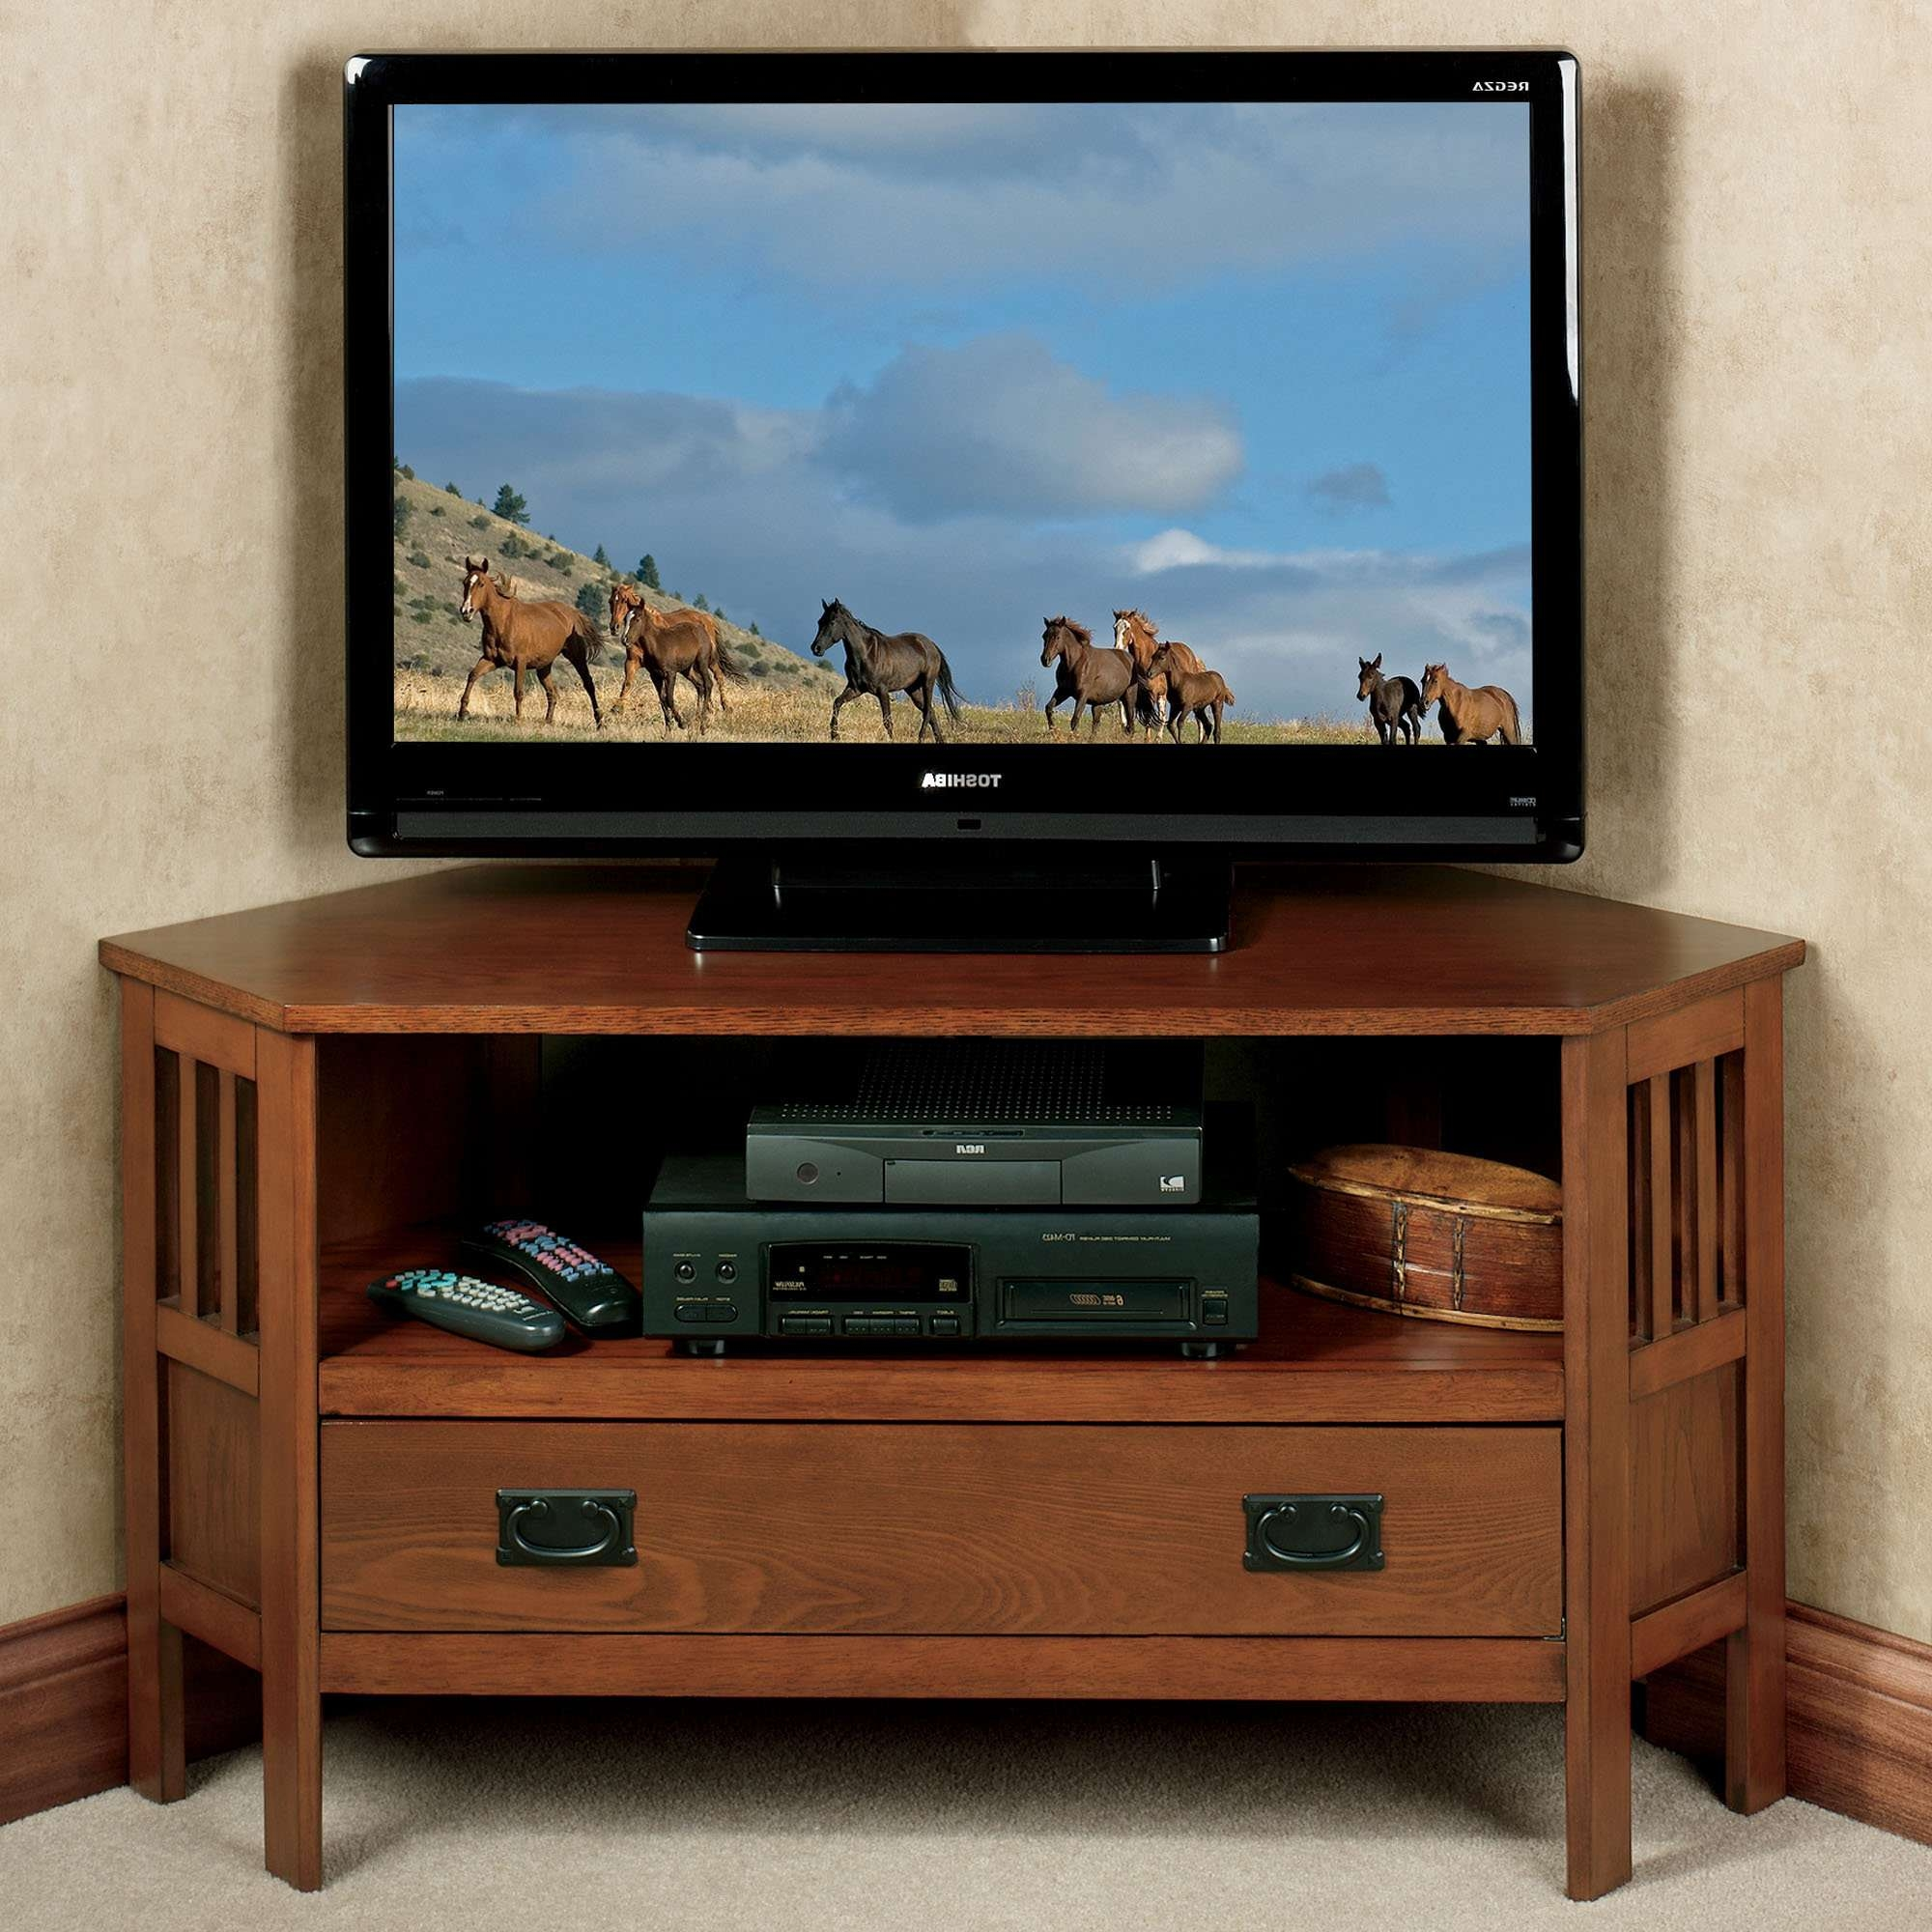 Wood Corner Tv Stands For 50 Inch Tv Tags : 54 Imposing Wood Pertaining To 50 Inch Corner Tv Cabinets (View 20 of 20)